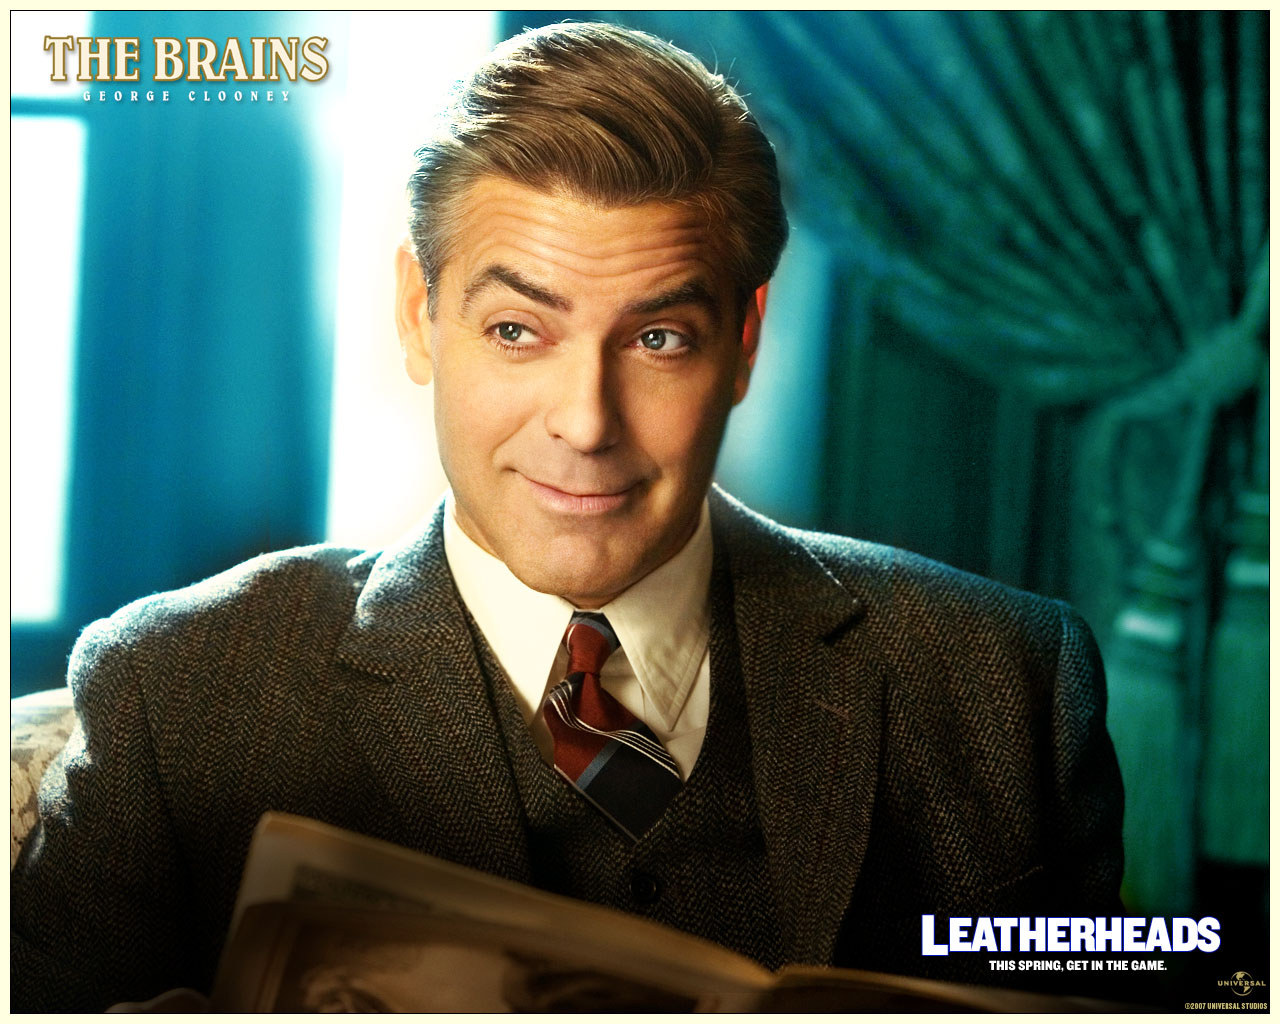 Leatherheads   George Clooney Wallpaper 532503 1280x1024